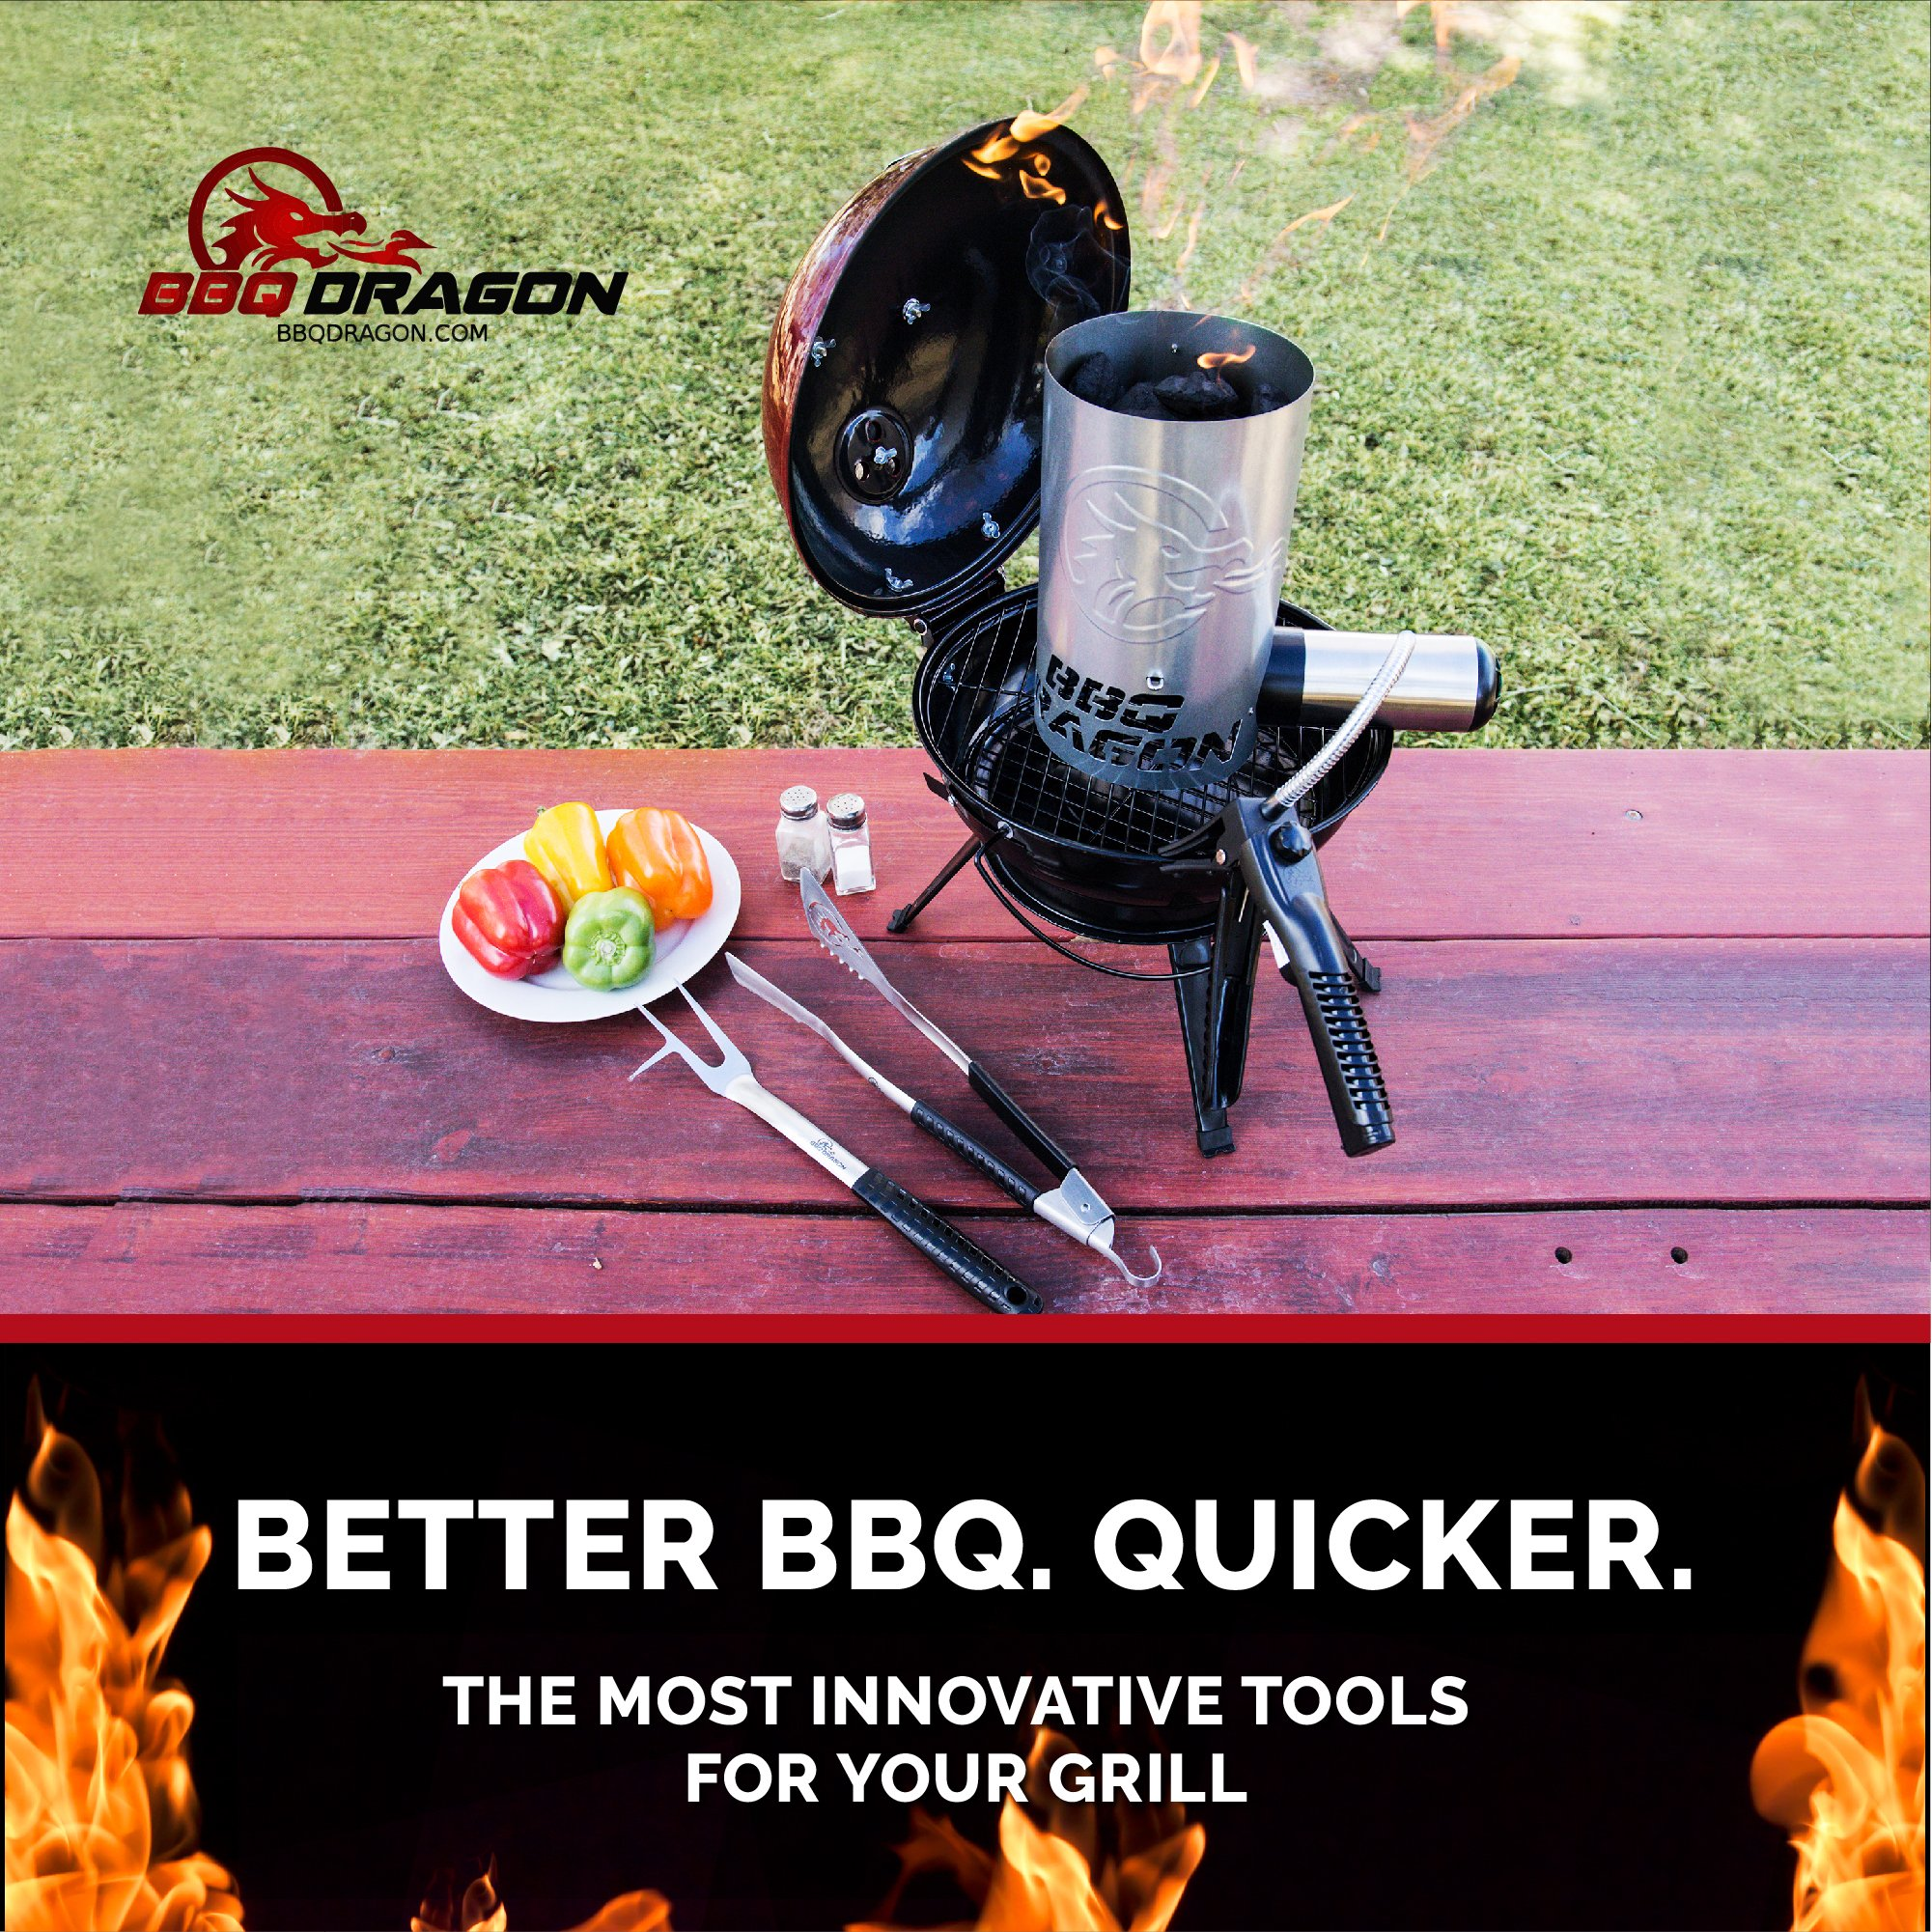 BBQ Dragon Chimney of Insanity Charcoal Starter - The Fastest and Easiest Charcoal Chimney Starter for BBQ Grills by BBQ Dragon